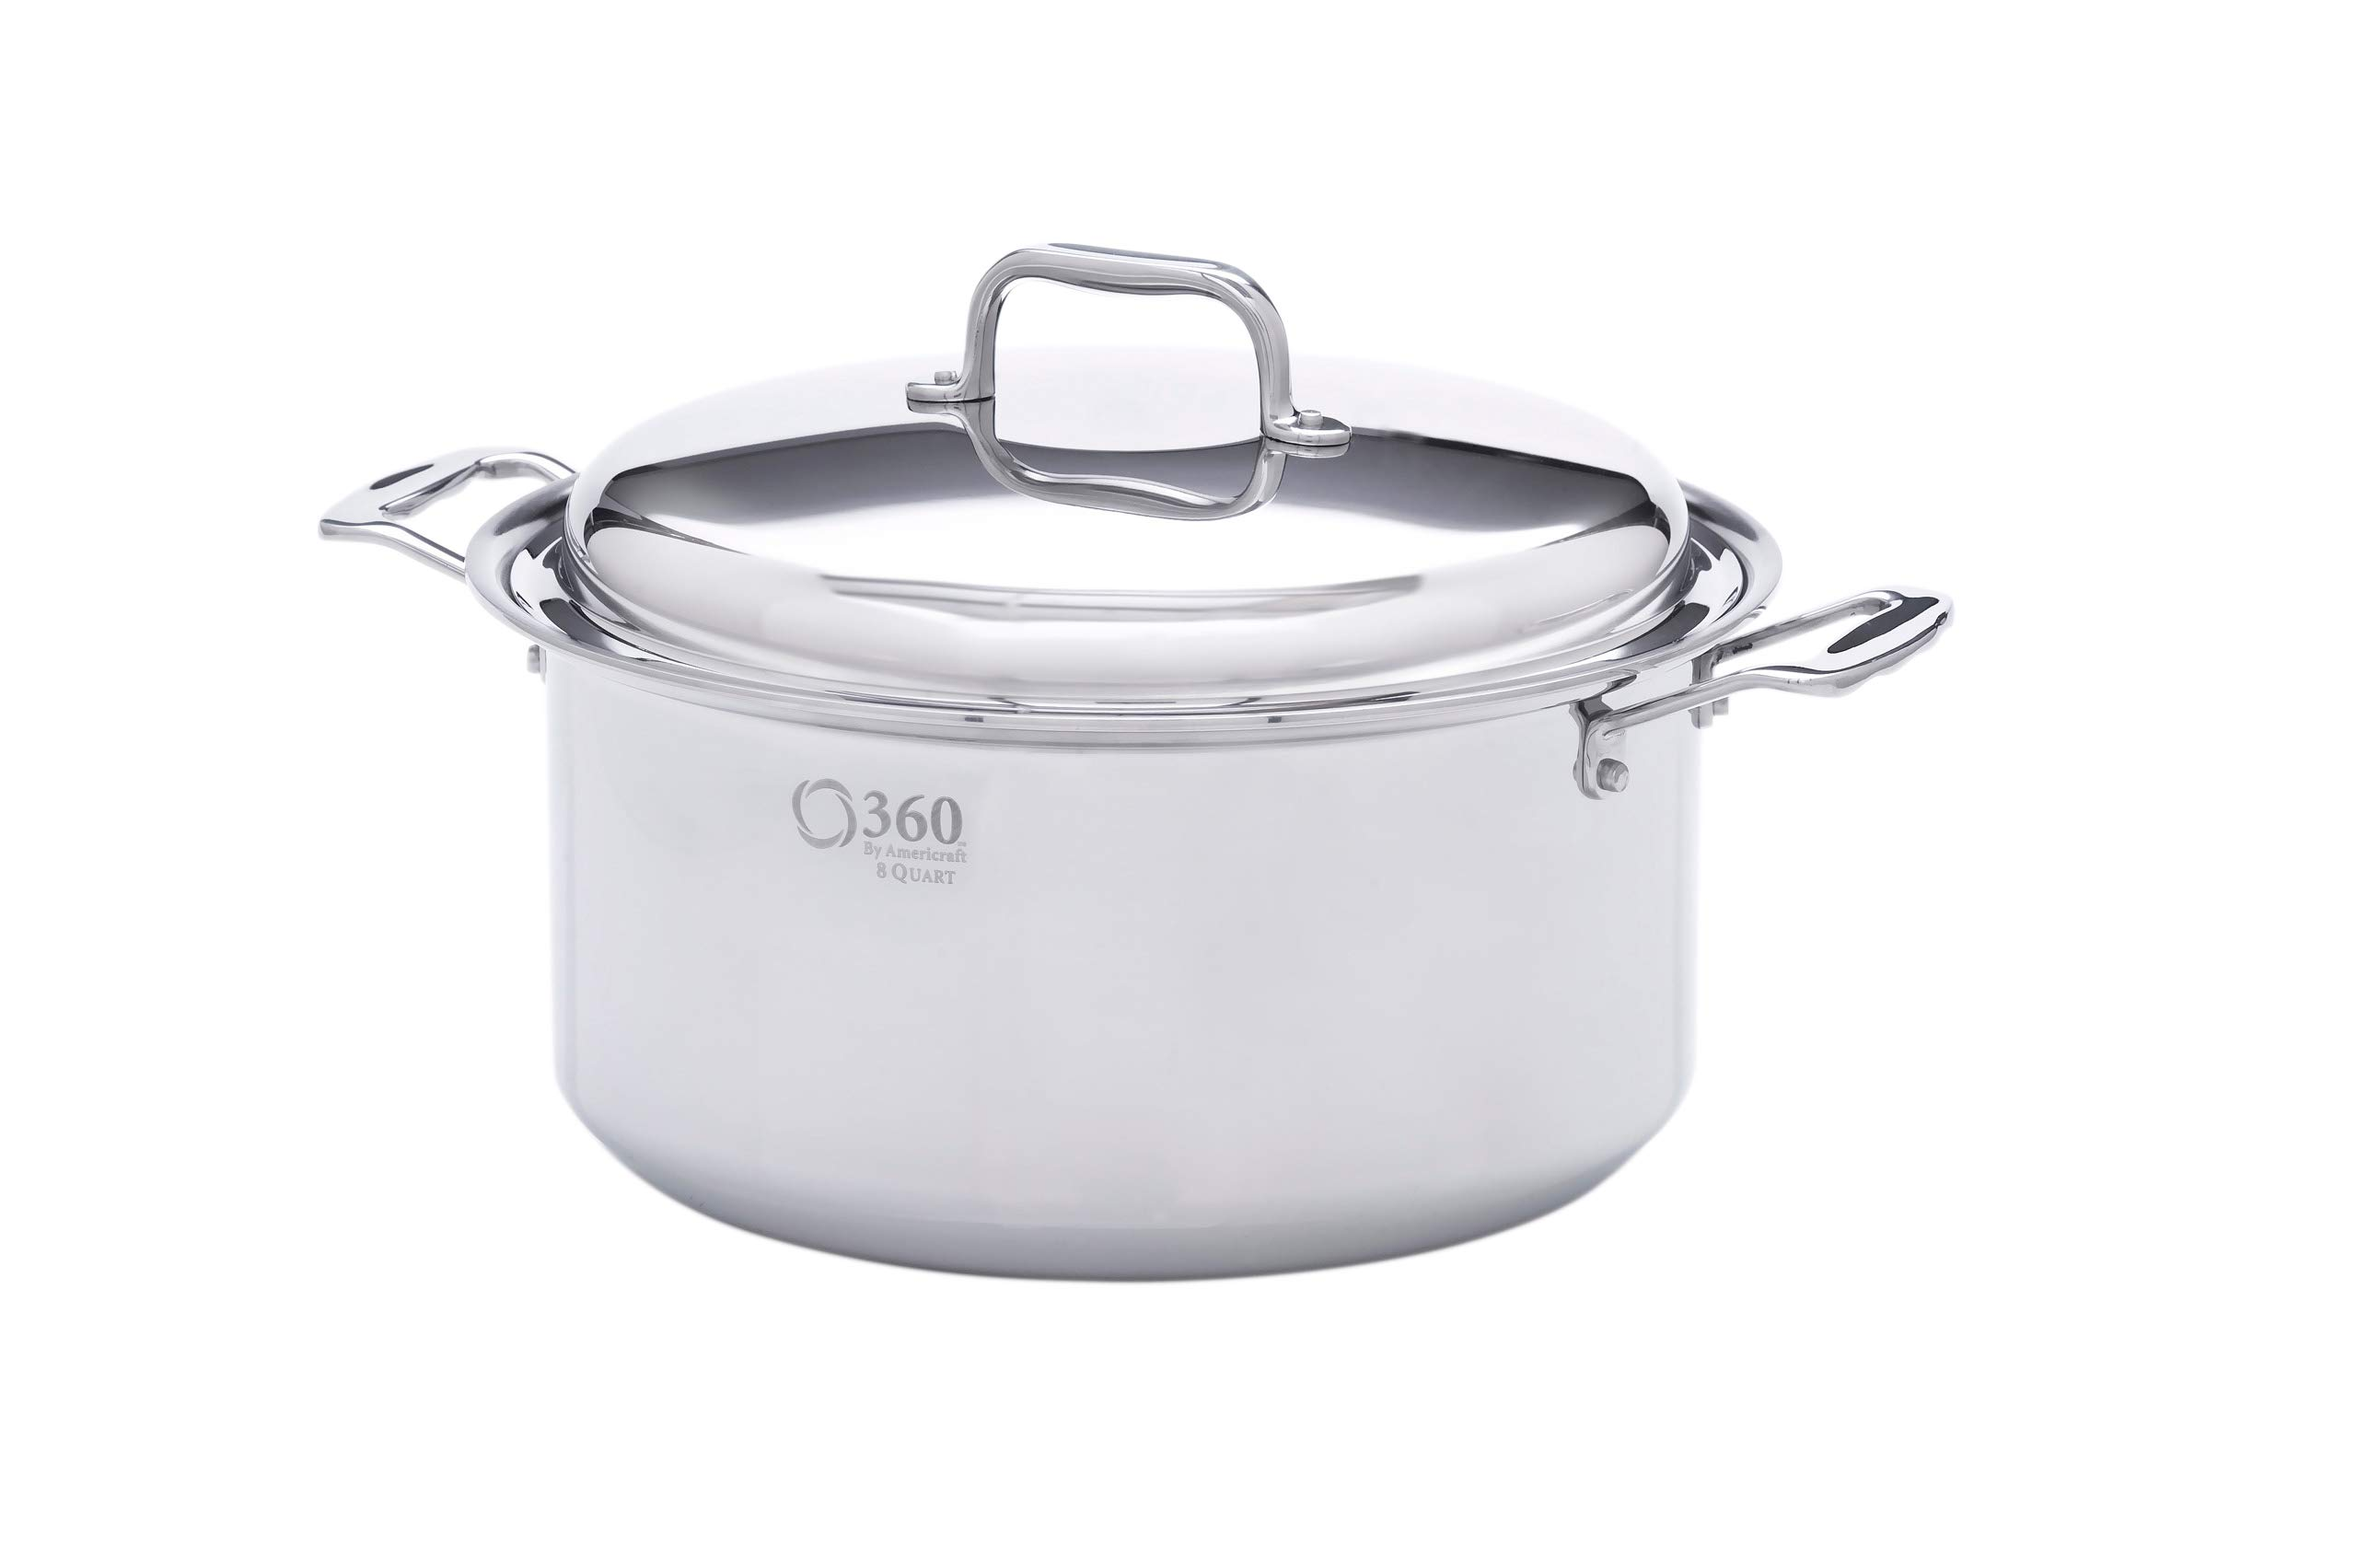 360 Cookware Stainless Steel Cookware, American Made, 8 Quart Pot with Cover for Gas, Electric, Induction Stoves. Waterless Cookware Cooking Capable, Lasts a Lifetime, Professional Grade